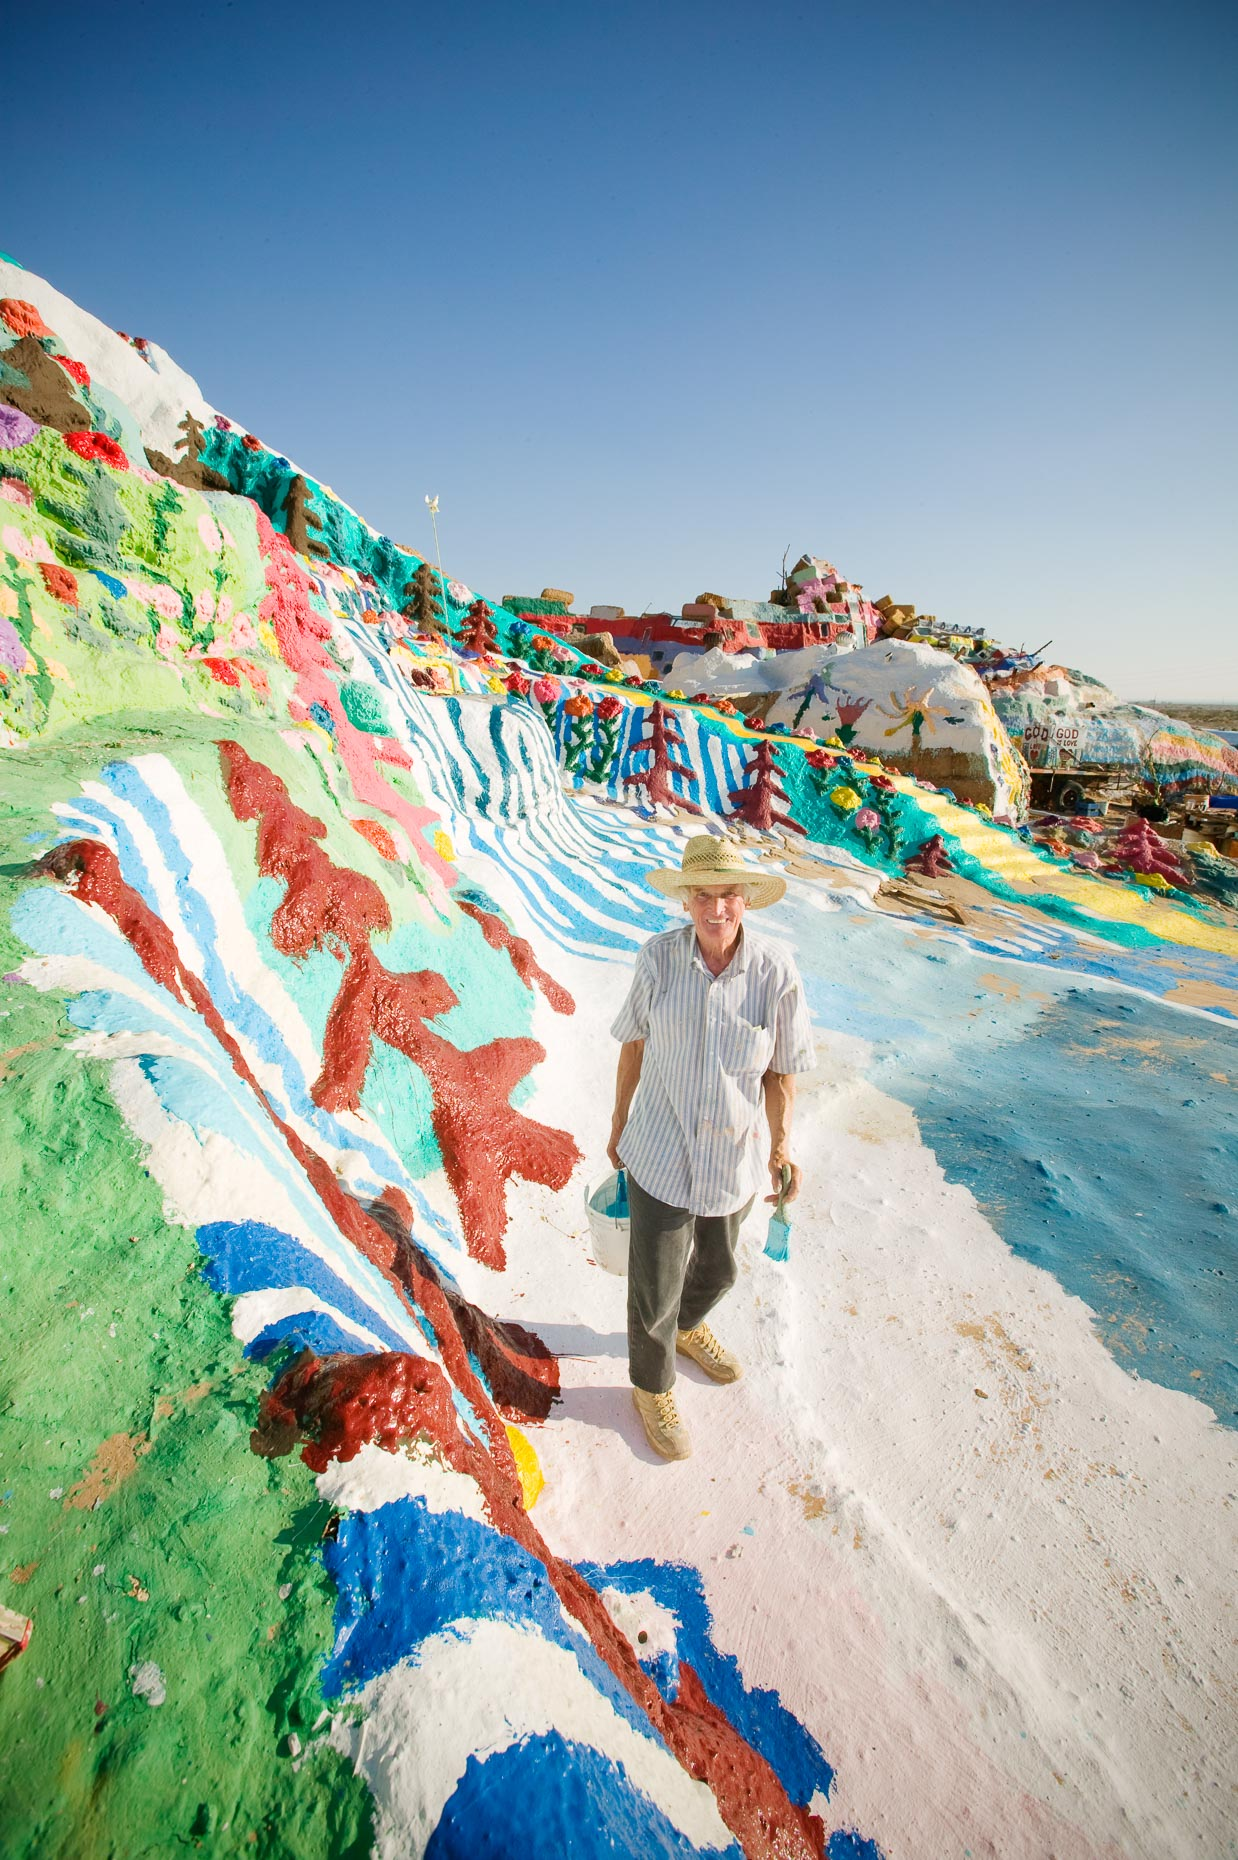 Portrait of Leonard Knight, creator of Salvation Mountain near Niland, California, folk art installation, by David Zaitz